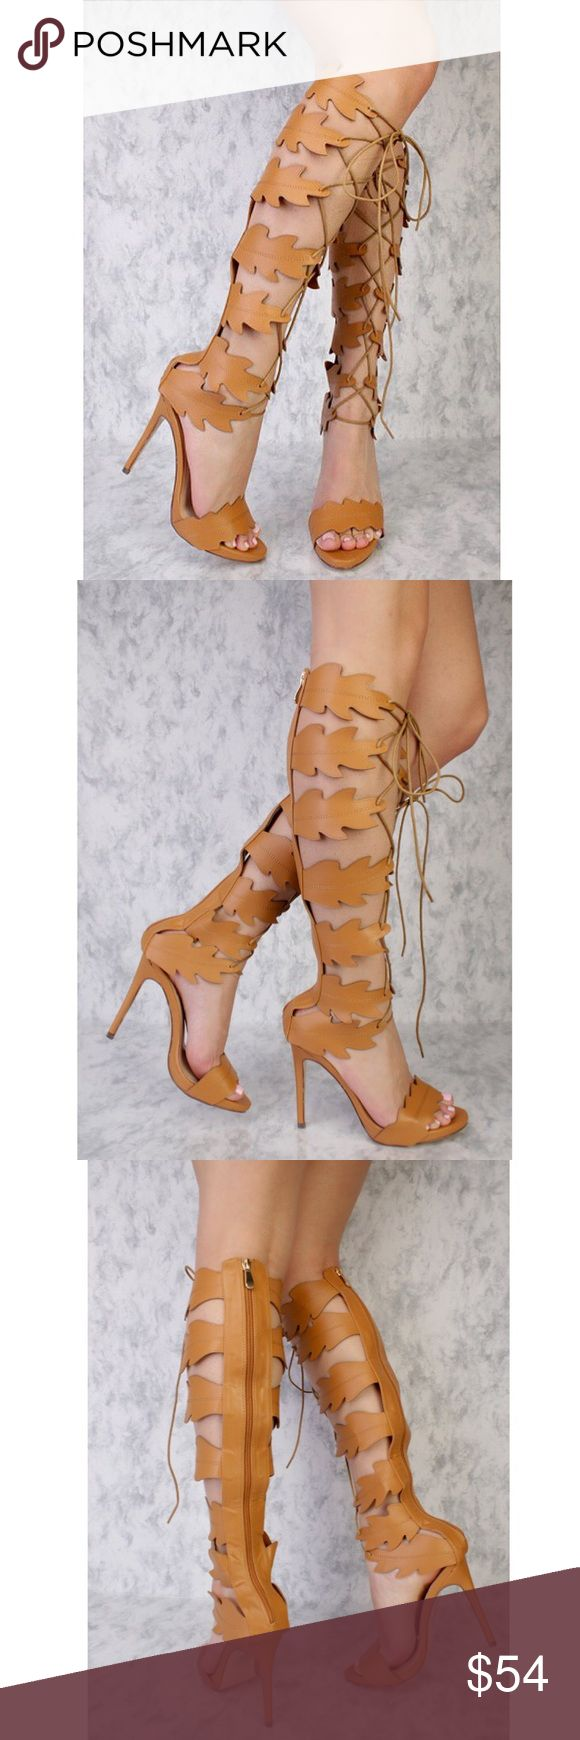 Leaf Cut Out Tan Gladiator BOOTS! 🍂👢😃 Brand new, in a box 📦. Great for upcoming spring! 👍🏼 🍂☀️ Absolutely one of a kind and a must have for my fierce fashionistas:) Heel measures approximately 4.75 inches. Shoe measures approximately 21.25 inches top to bottom. *Also available in Black- size 7 and White- size 9!! Athena Shoes Heeled Boots